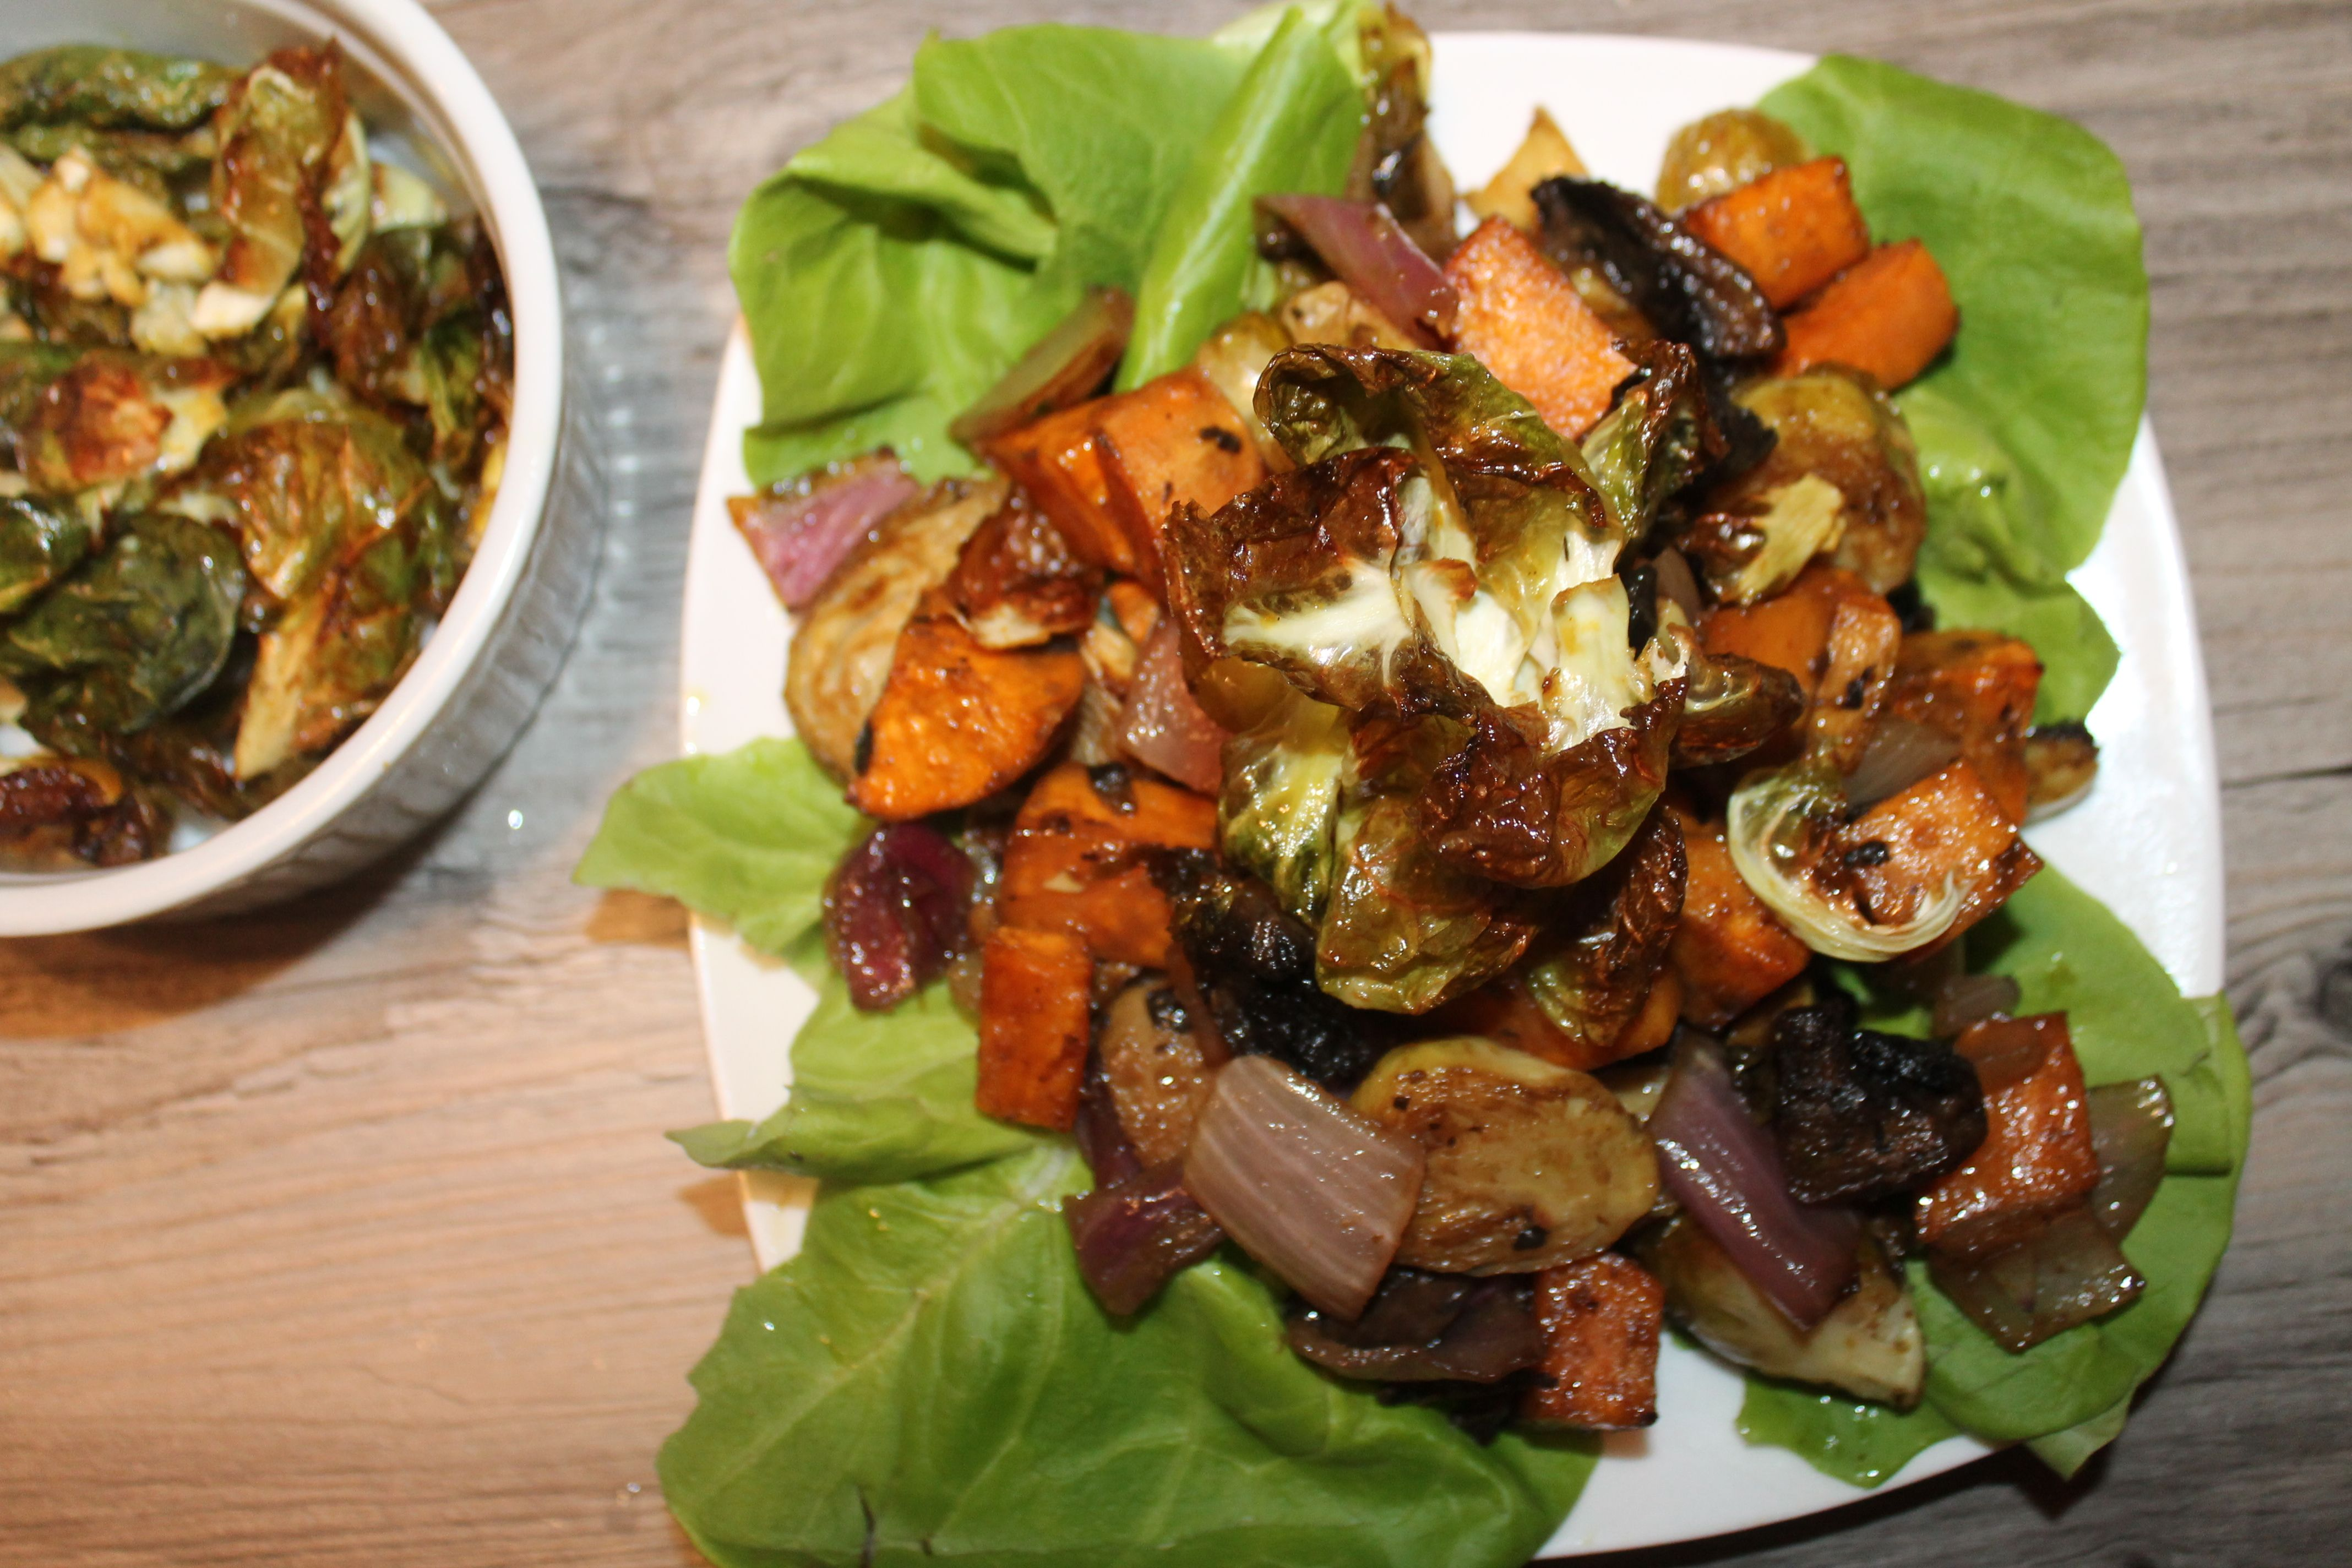 Smoky Mustard Maple Roasted Vegetables with Brussels Crisps | The Lazy Vegan Baker